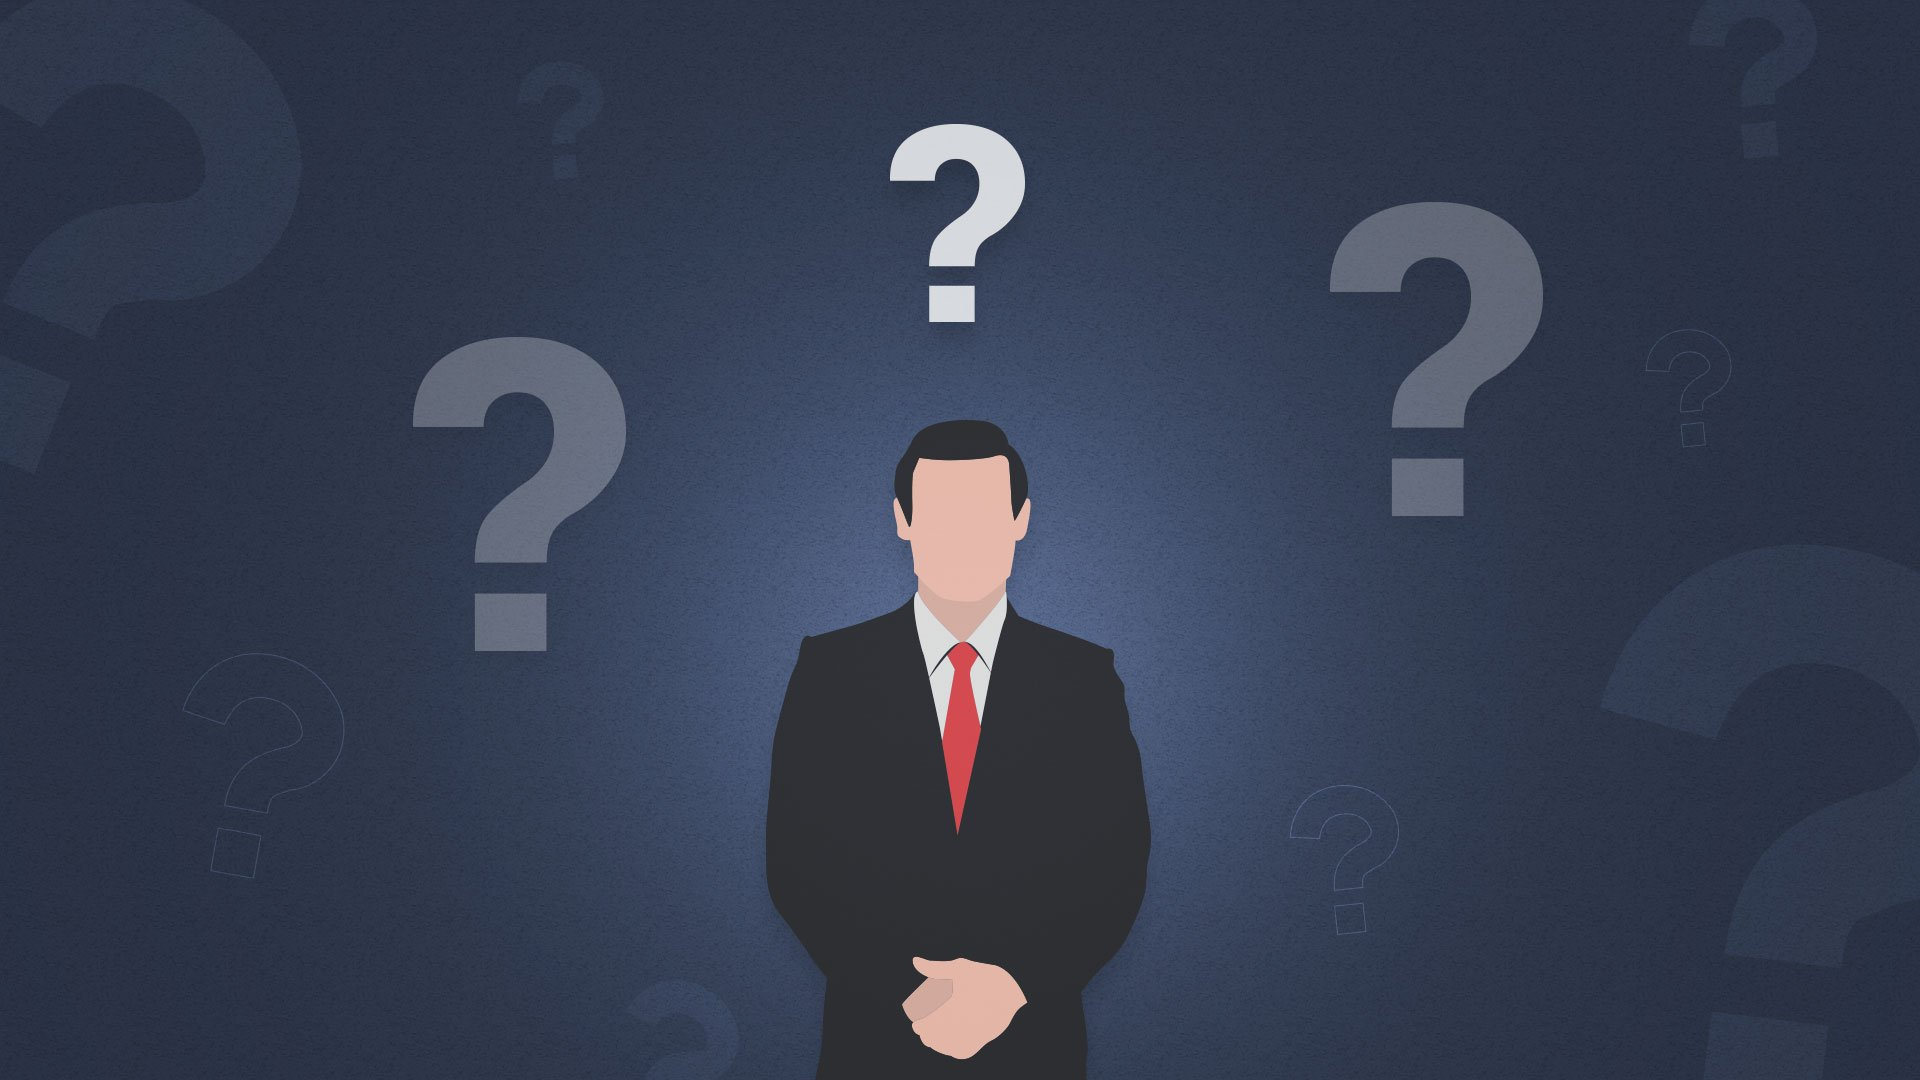 5 Simple Questions The Best Leaders Always Ask